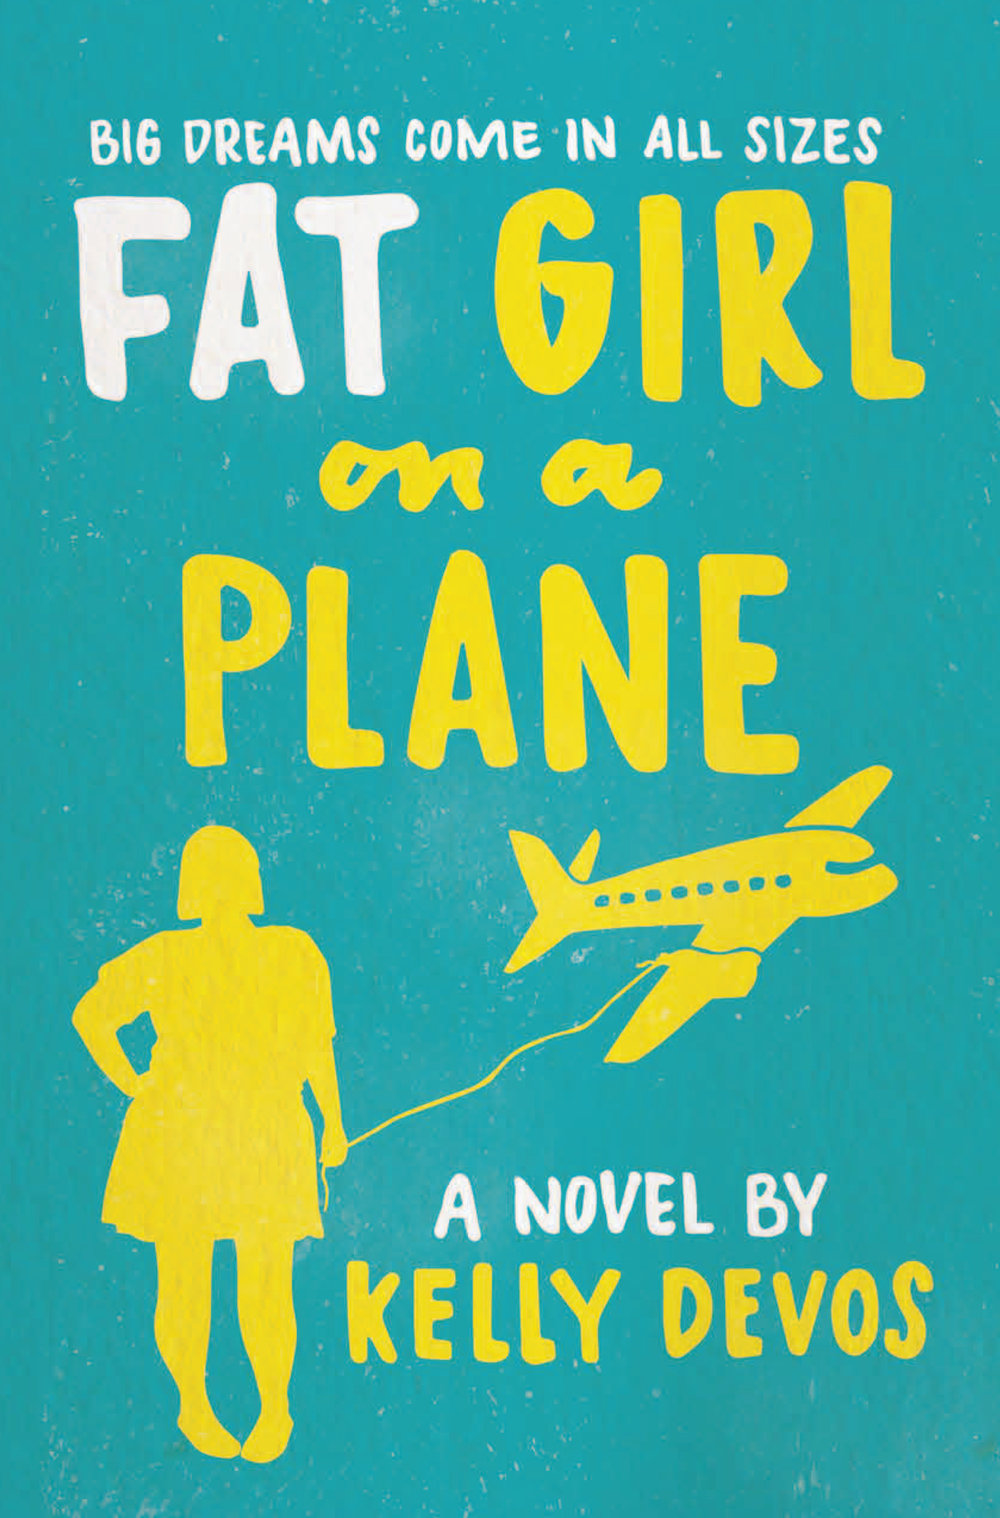 Happy book birthday to FAT GIRL ON A PLANE by Kelly deVos! - From debut author Kelly deVos comes an unforgettable novel, told in dual Fat and Skinny perspectives, about smart fashion, pursuing your dreams, and loving yourself. High school senior Cookie Vonn's post-graduation dreams include getting out of Phoenix, attending Parsons and becoming the next great fashion designer. But in the world of fashion, being fat is a cardinal sin. It doesn't help that she's constantly compared to her supermodel mother—and named after a dessert. Thanks to her job at a fashion blog, Cookie scores a trip to New York to pitch her portfolio and appeal for a scholarship, but her plans are put on standby when she's declared too fat too fly. Forced to turn to her BFF for cash, Cookie buys a second seat on the plane. She arrives in the city to find that she's been replaced by the boss's daughter, a girl who's everything she's not—ultrathin and superrich. Bowing to society's pressure, she vows to lose weight, get out of the friend zone with her crush, and put her life on track. Cookie expected sunshine and rainbows, but nothing about her new life is turning out like she planned. When the fashion designer of the moment offers her what she's always wanted—an opportunity to live and study in New York—she finds herself in a world full of people more interested in putting women down than dressing them up. Her designs make waves, but her real dream of creating great clothes for people of all sizes seems to grow more distant by the day. Will she realize that she's always had the power to make her own dreams come true?